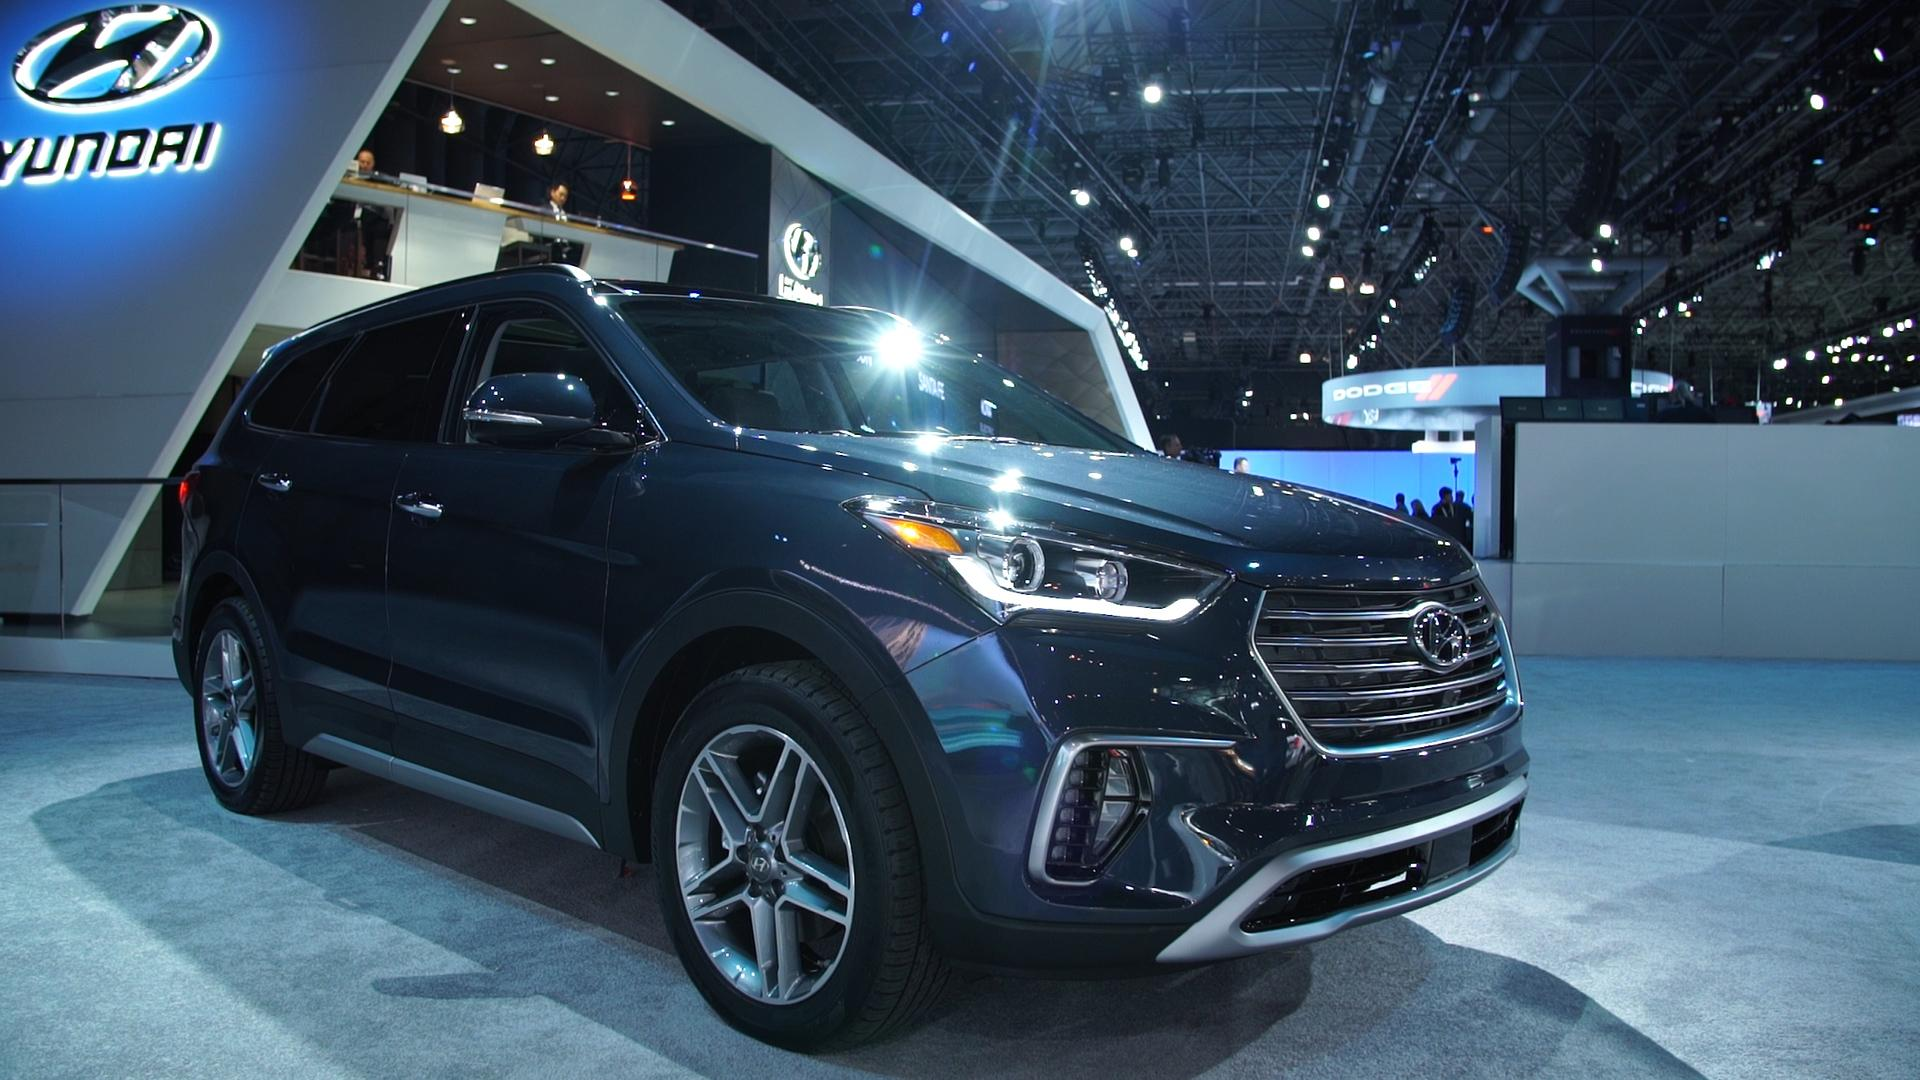 a030c152f2 2019 Hyundai Santa Fe Gets a Major Makeover - Consumer Reports